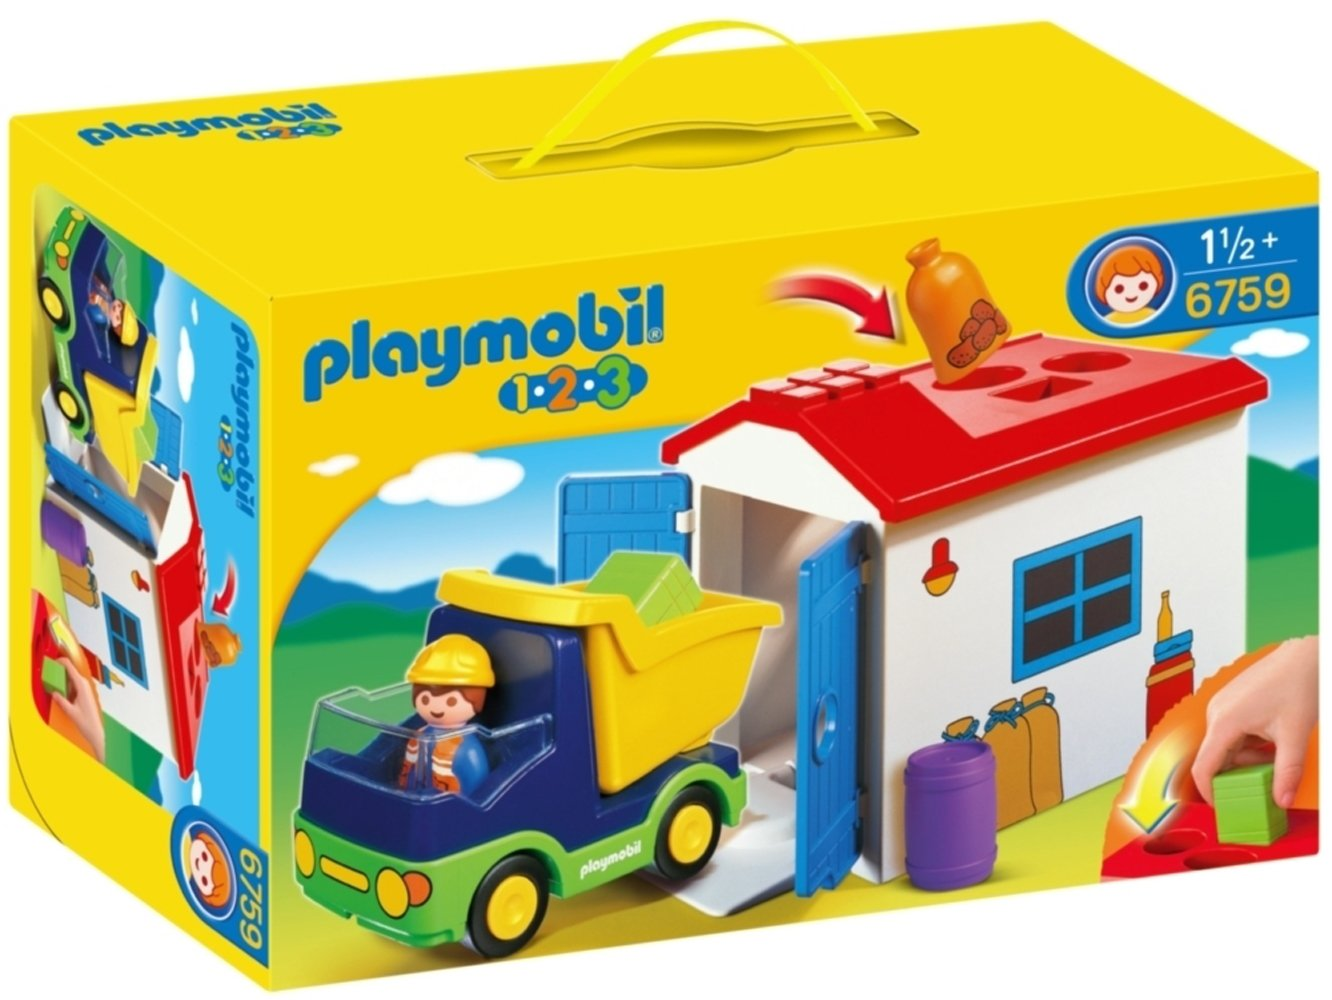 Amazon Com Playmobil 1 2 3 Truck With Garage Toys Games